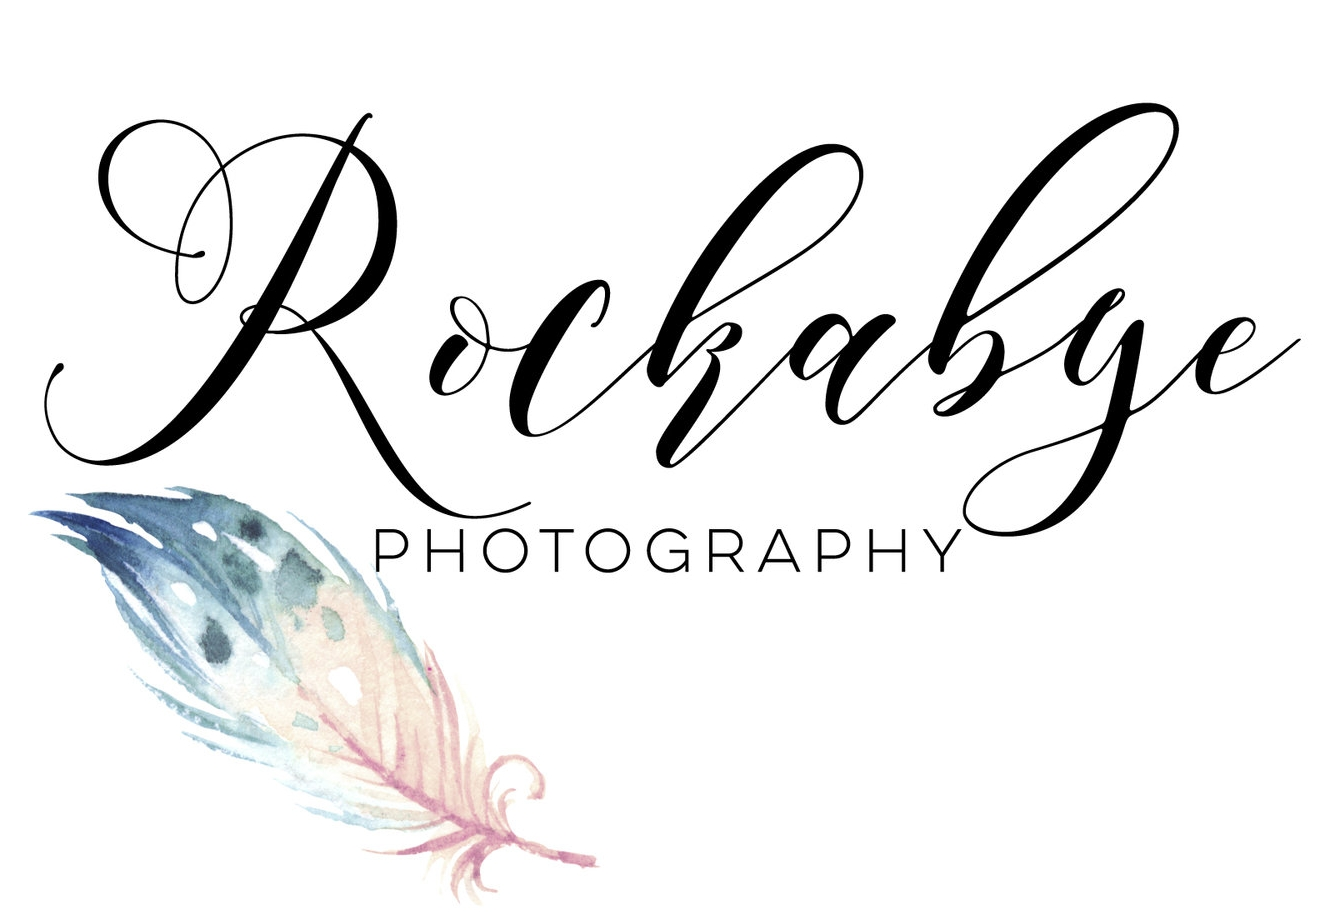 Rockabye Photography